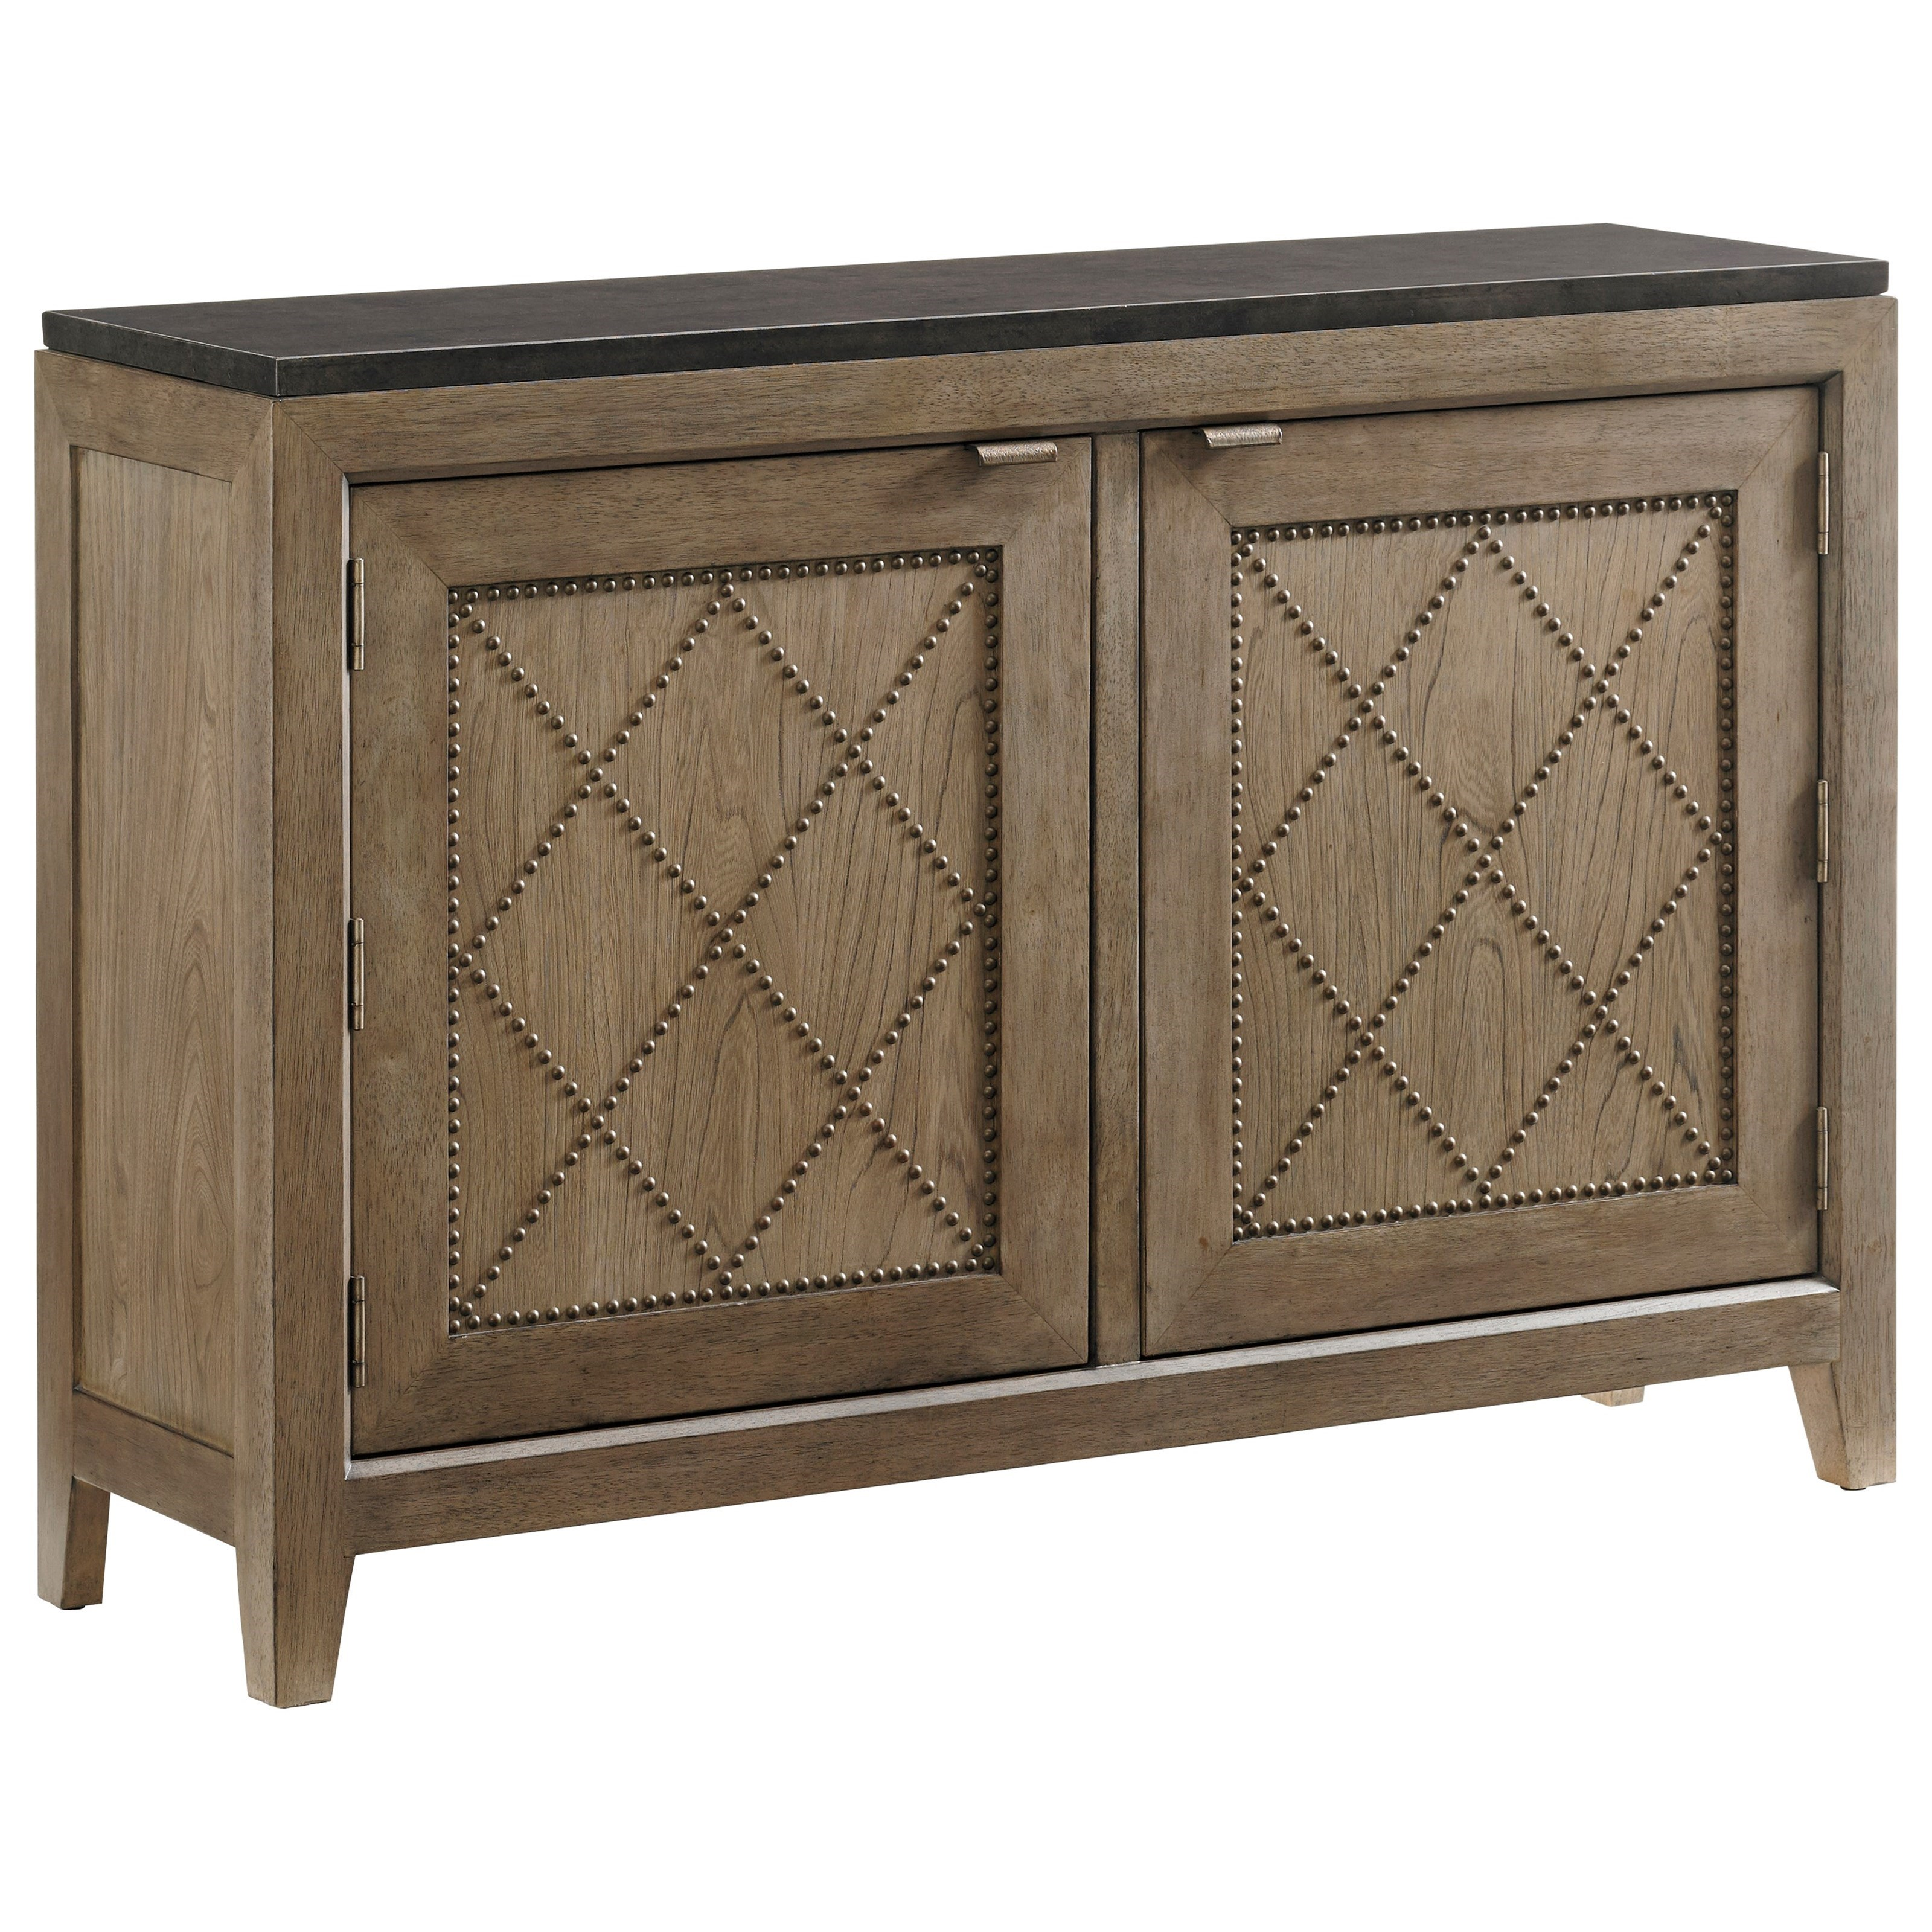 Cypress Point Emerson Hall Chest by Tommy Bahama Home at Stuckey Furniture